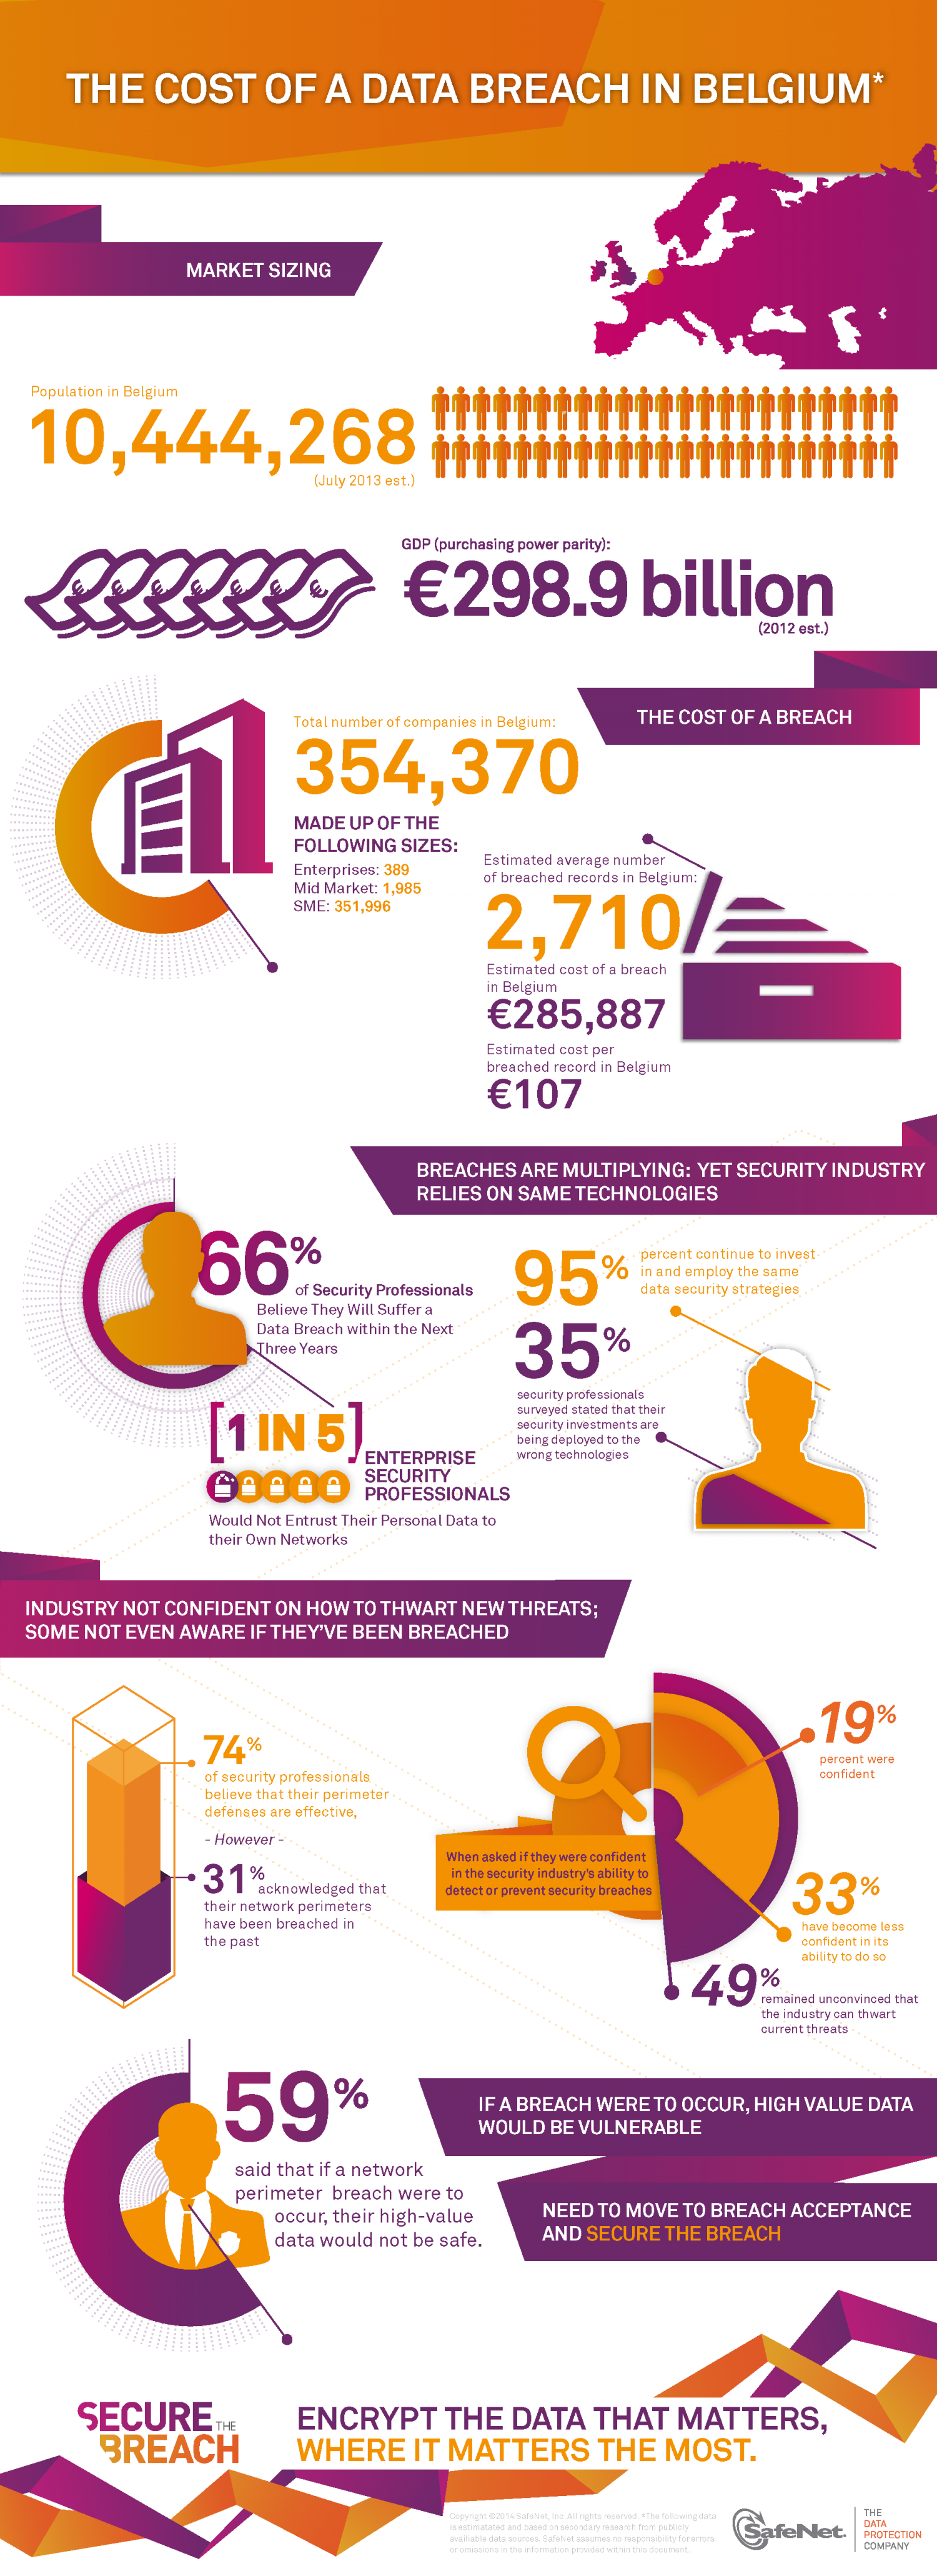 The Cost of a Data Breach in Belgium Infographic